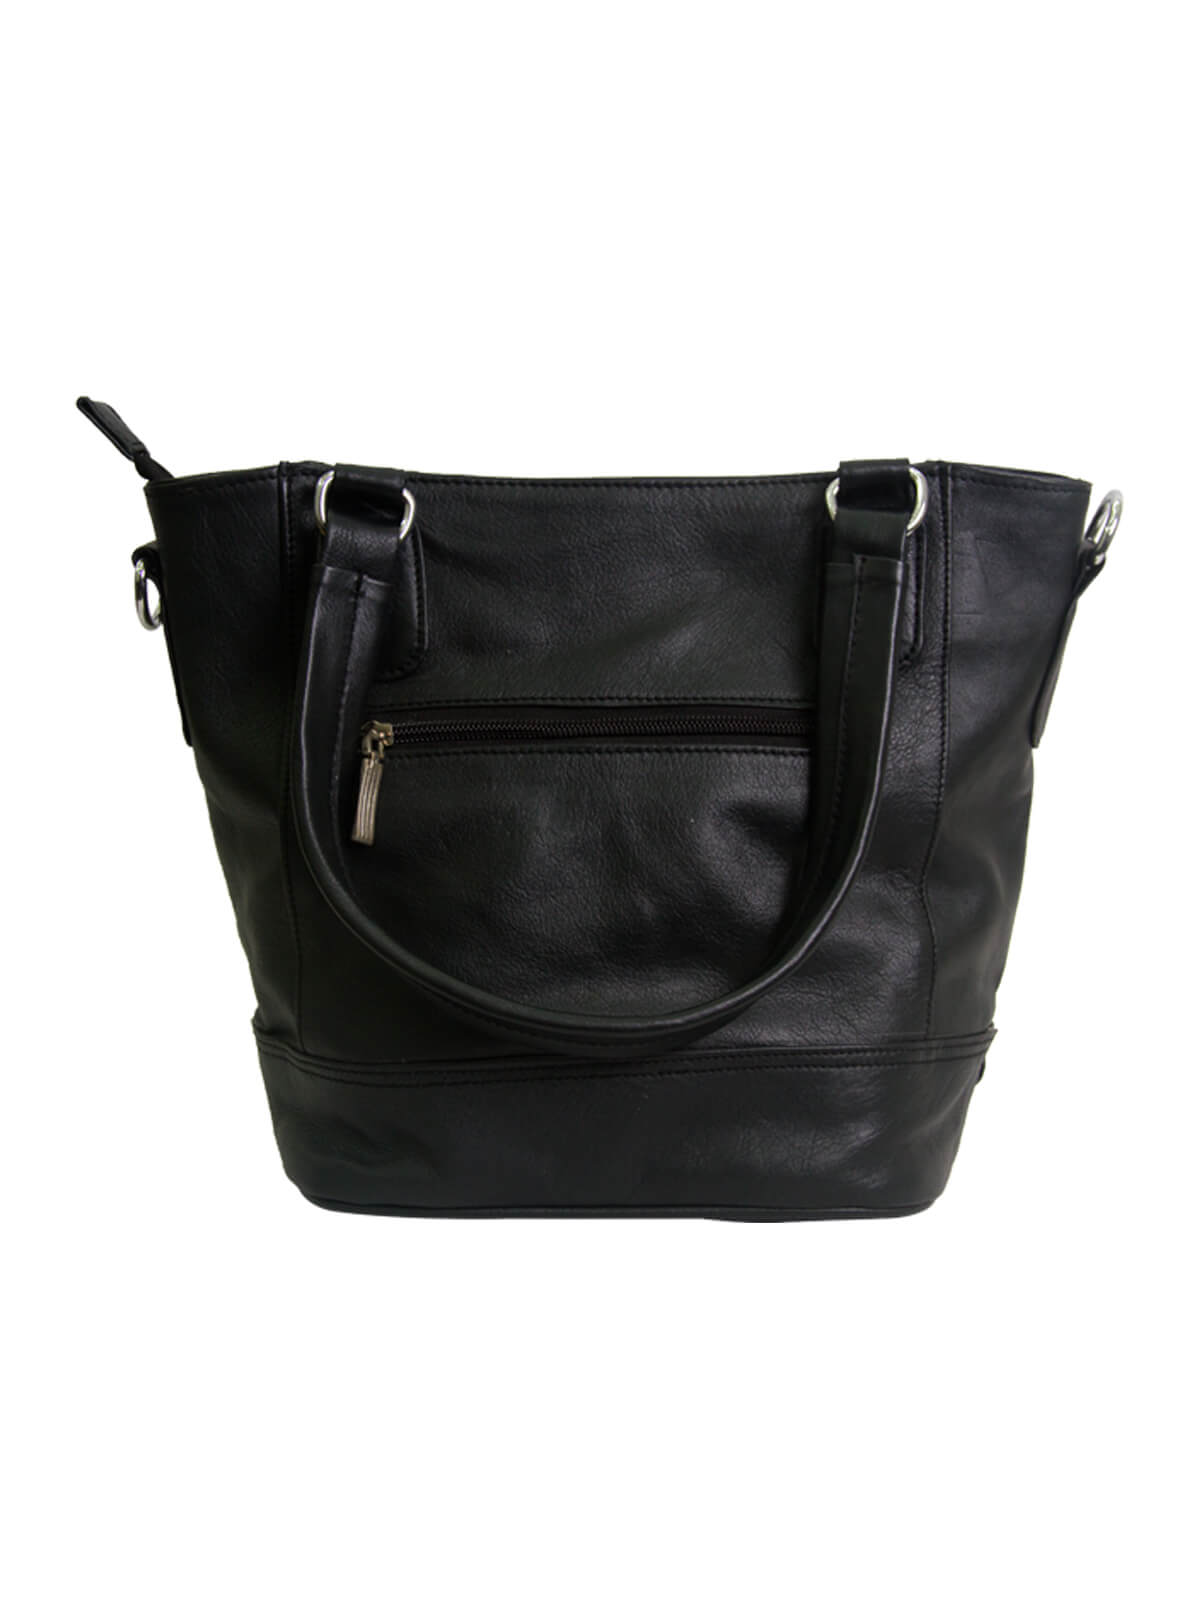 Black Ladies Bag